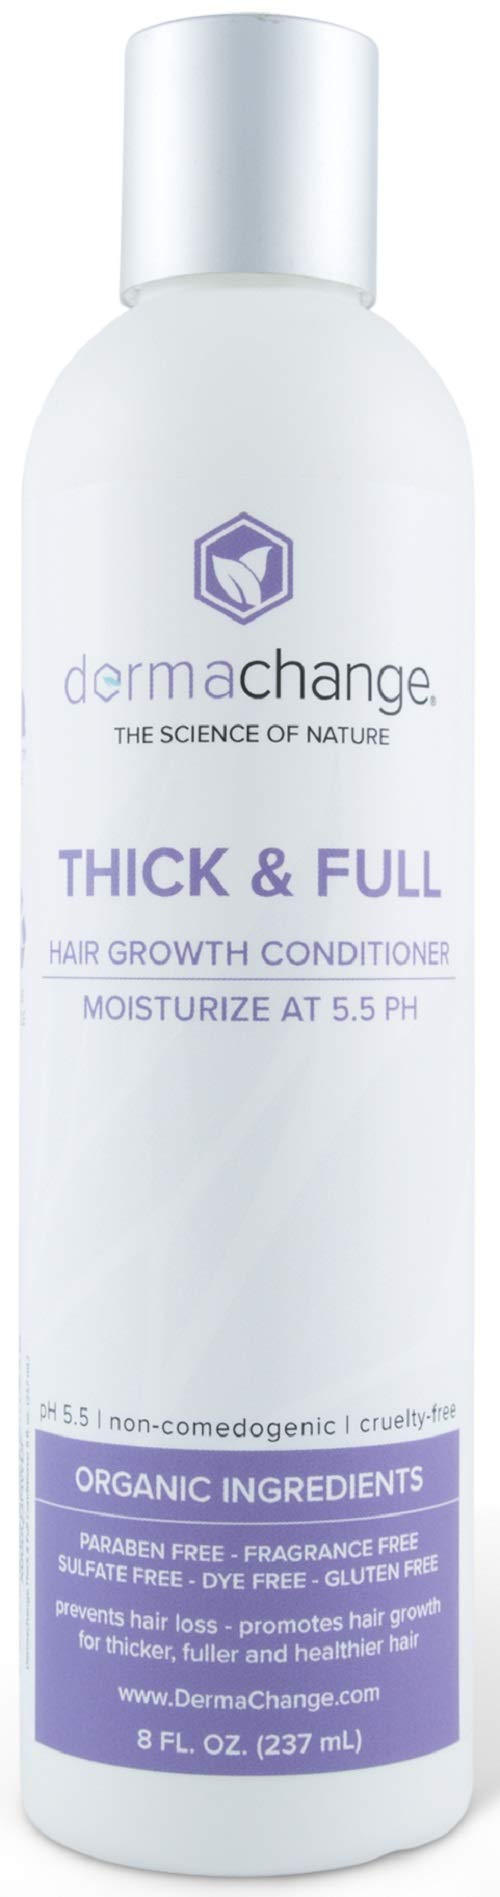 Hair Growth Organic Conditioner - Hair loss treatments - With Anti Dandruff Formula - Prevents Dry Frizzy Hair - Sulfate, Paraben & Gluten Free - For Women and Men (8 oz) - Made in USA by DermaChange